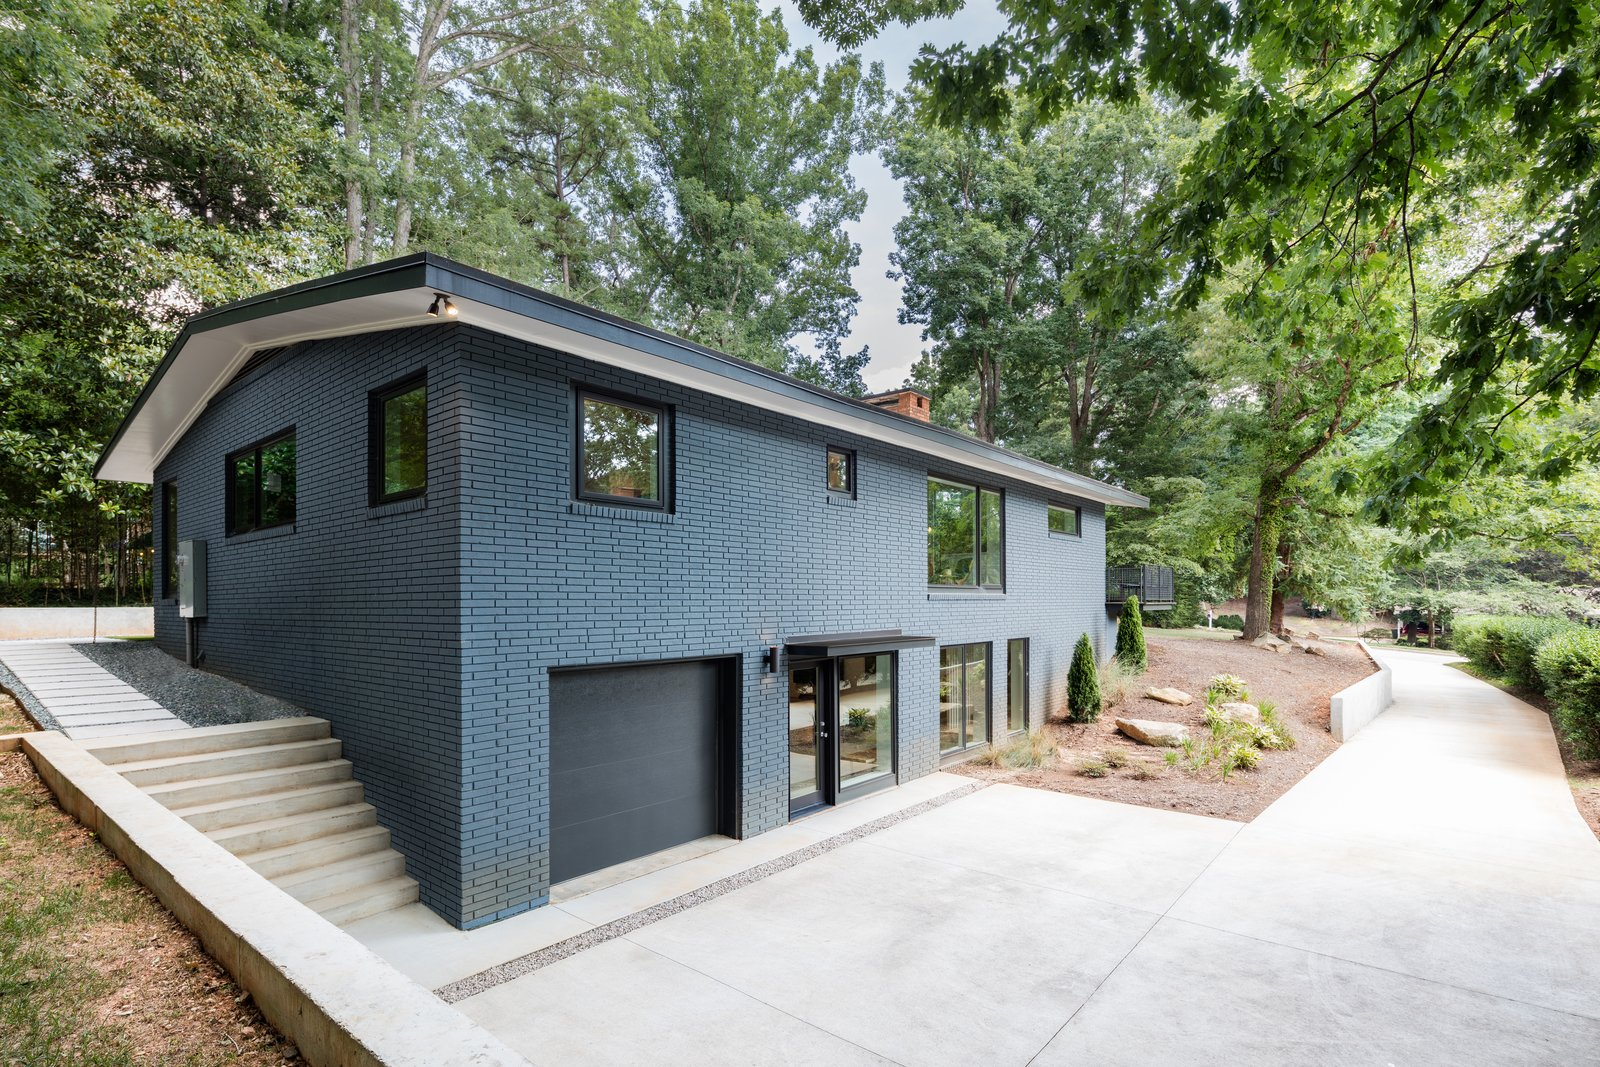 Photo 14 of 14 in Elegantly Renovated, a Midcentury Home in Raleigh Asks $975K